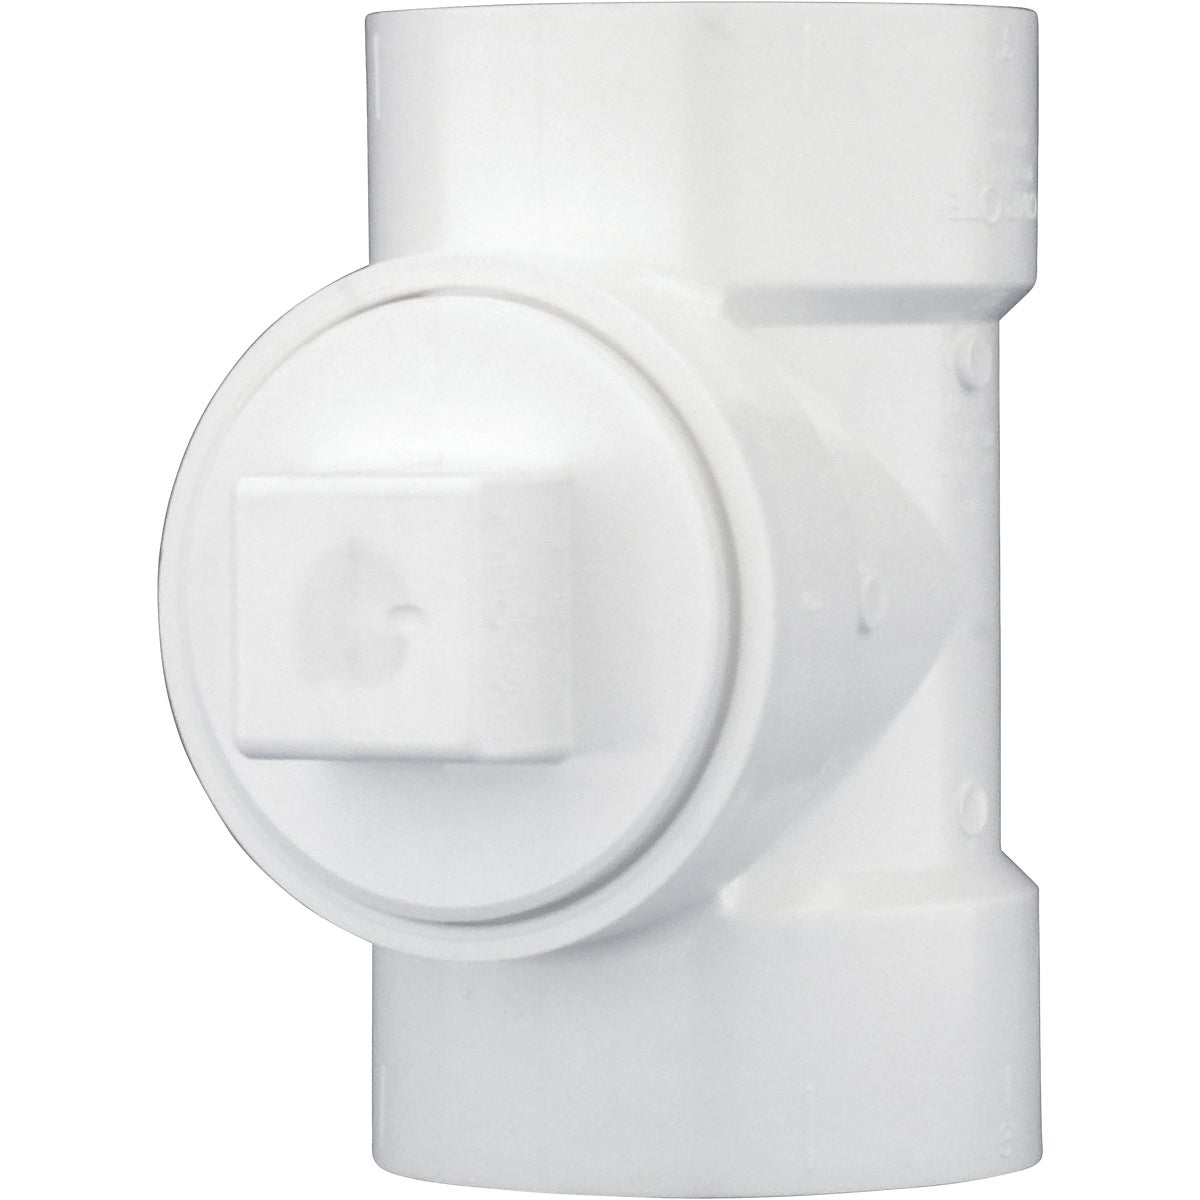 "3"" TEST TEE W/ PLUG - 71330 by Genova Inc  Pvc Dwv"